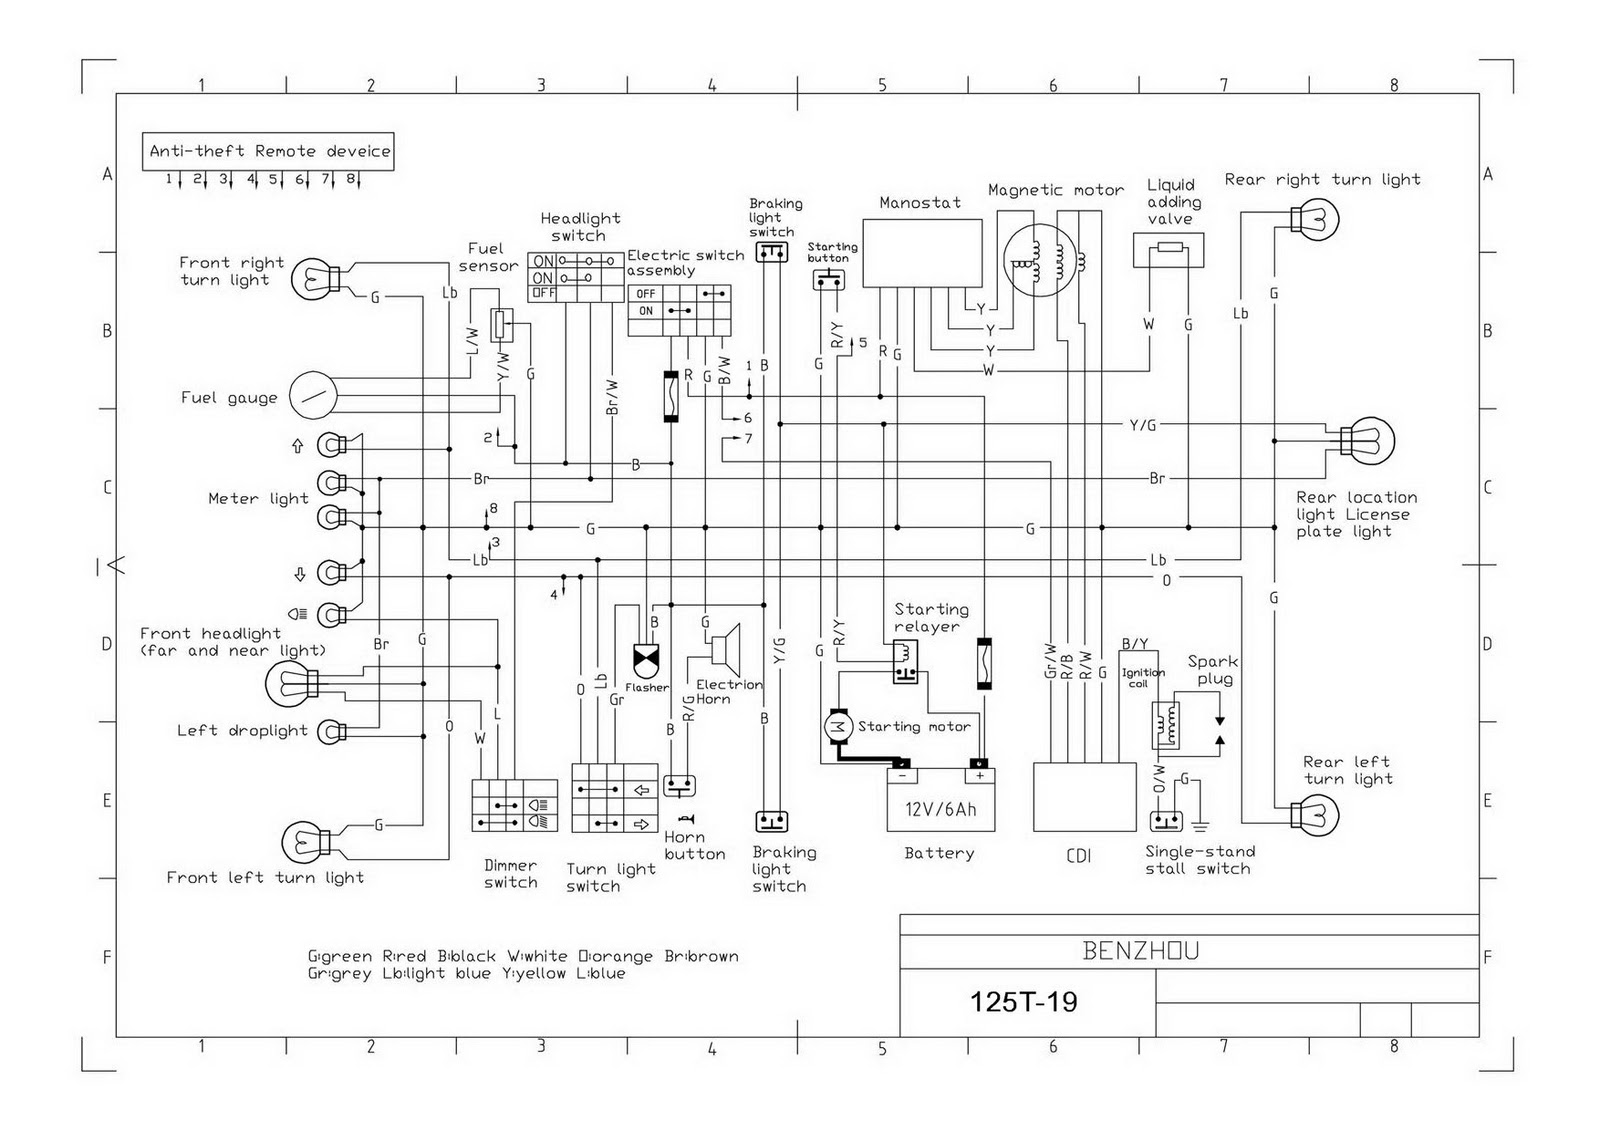 Taotao 125cc Wiring Diagram Great Design Of 110cc Harness Tao Tao125 Atv U2022 138dhw Co 50cc Moped